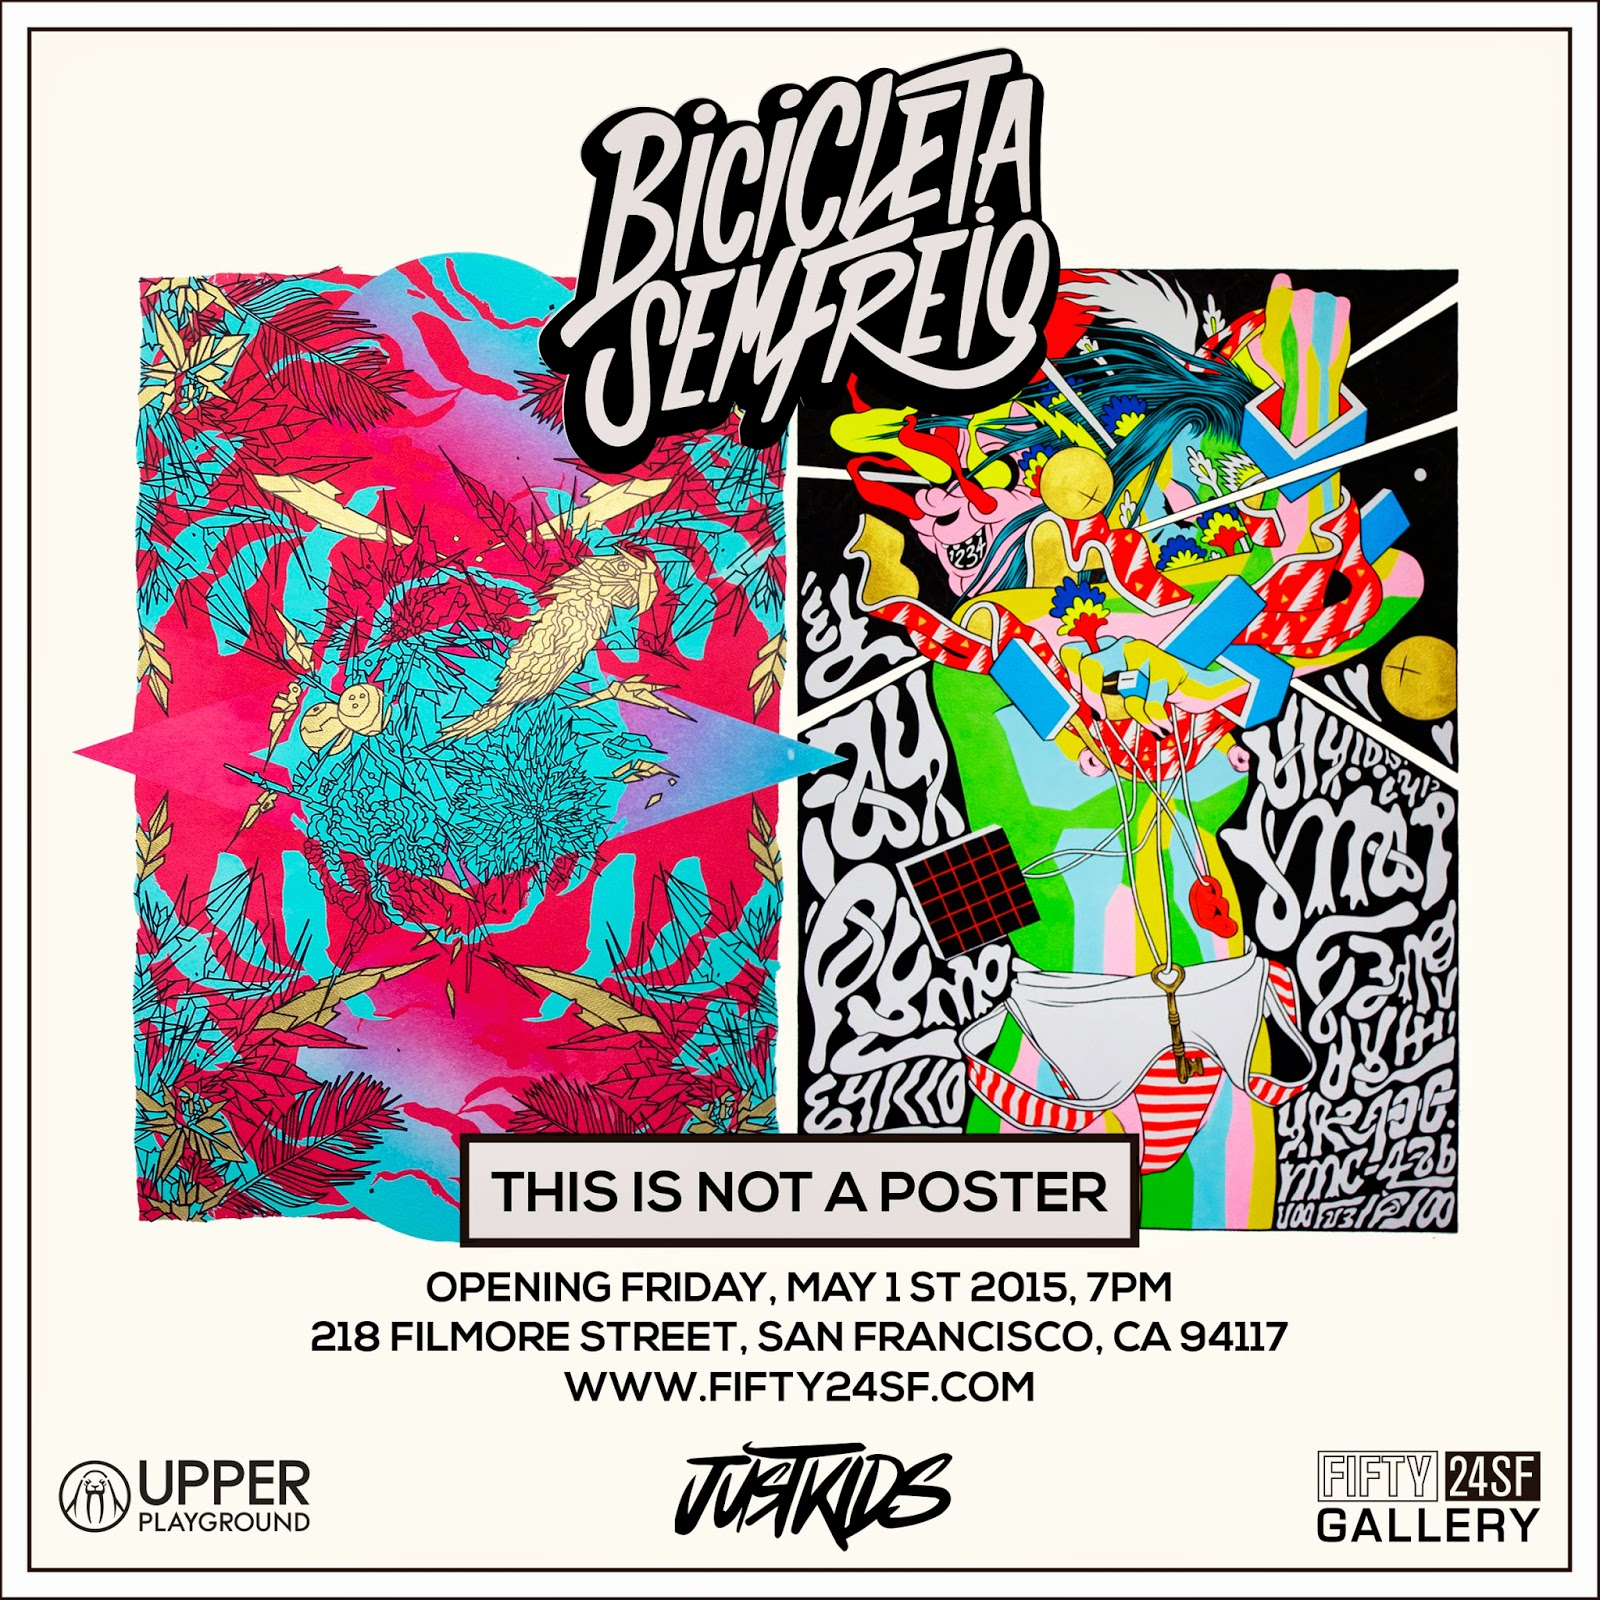 "Bicicleta Sem Freio is set to open their latest solo exhibition this week at Fifty24SF in San Francisco, California. Entitled ""This Is Not A Poster"", the show is produced in association with JUSTKIDS and Upper Playground."